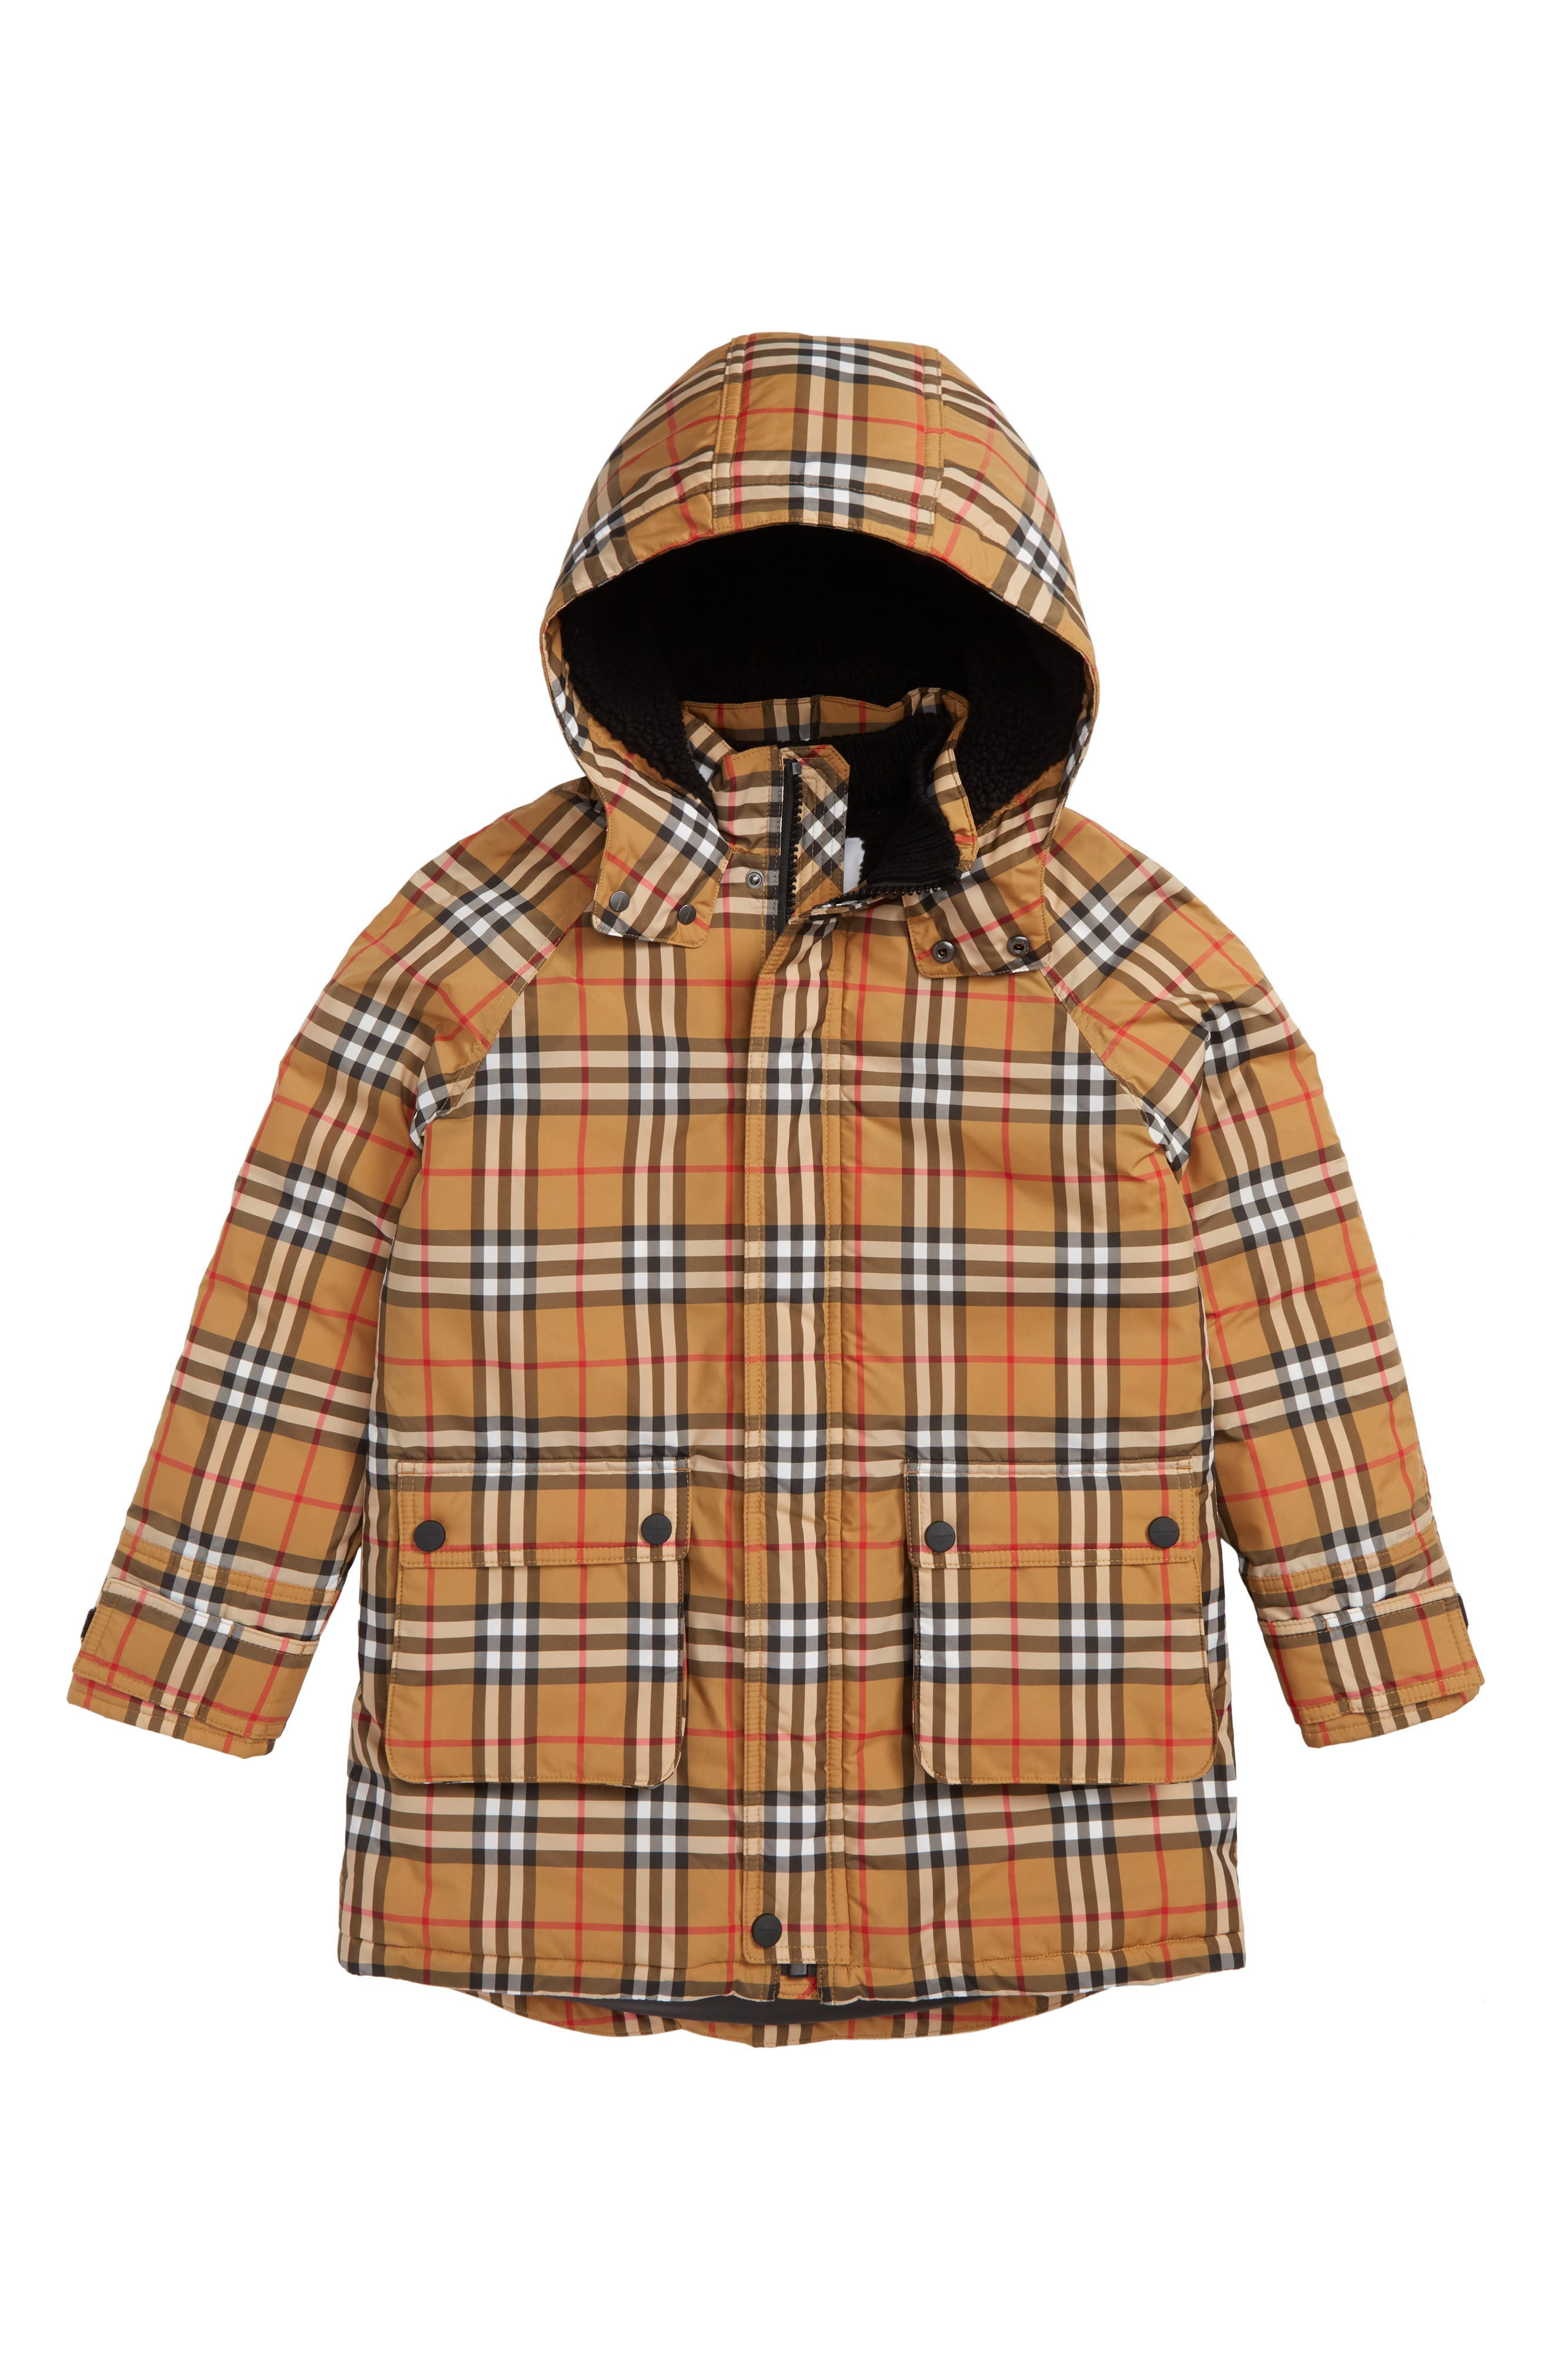 BURBERRY, Check Waterproof Down Puffer Jacket, Main thumbnail 1, color, 701